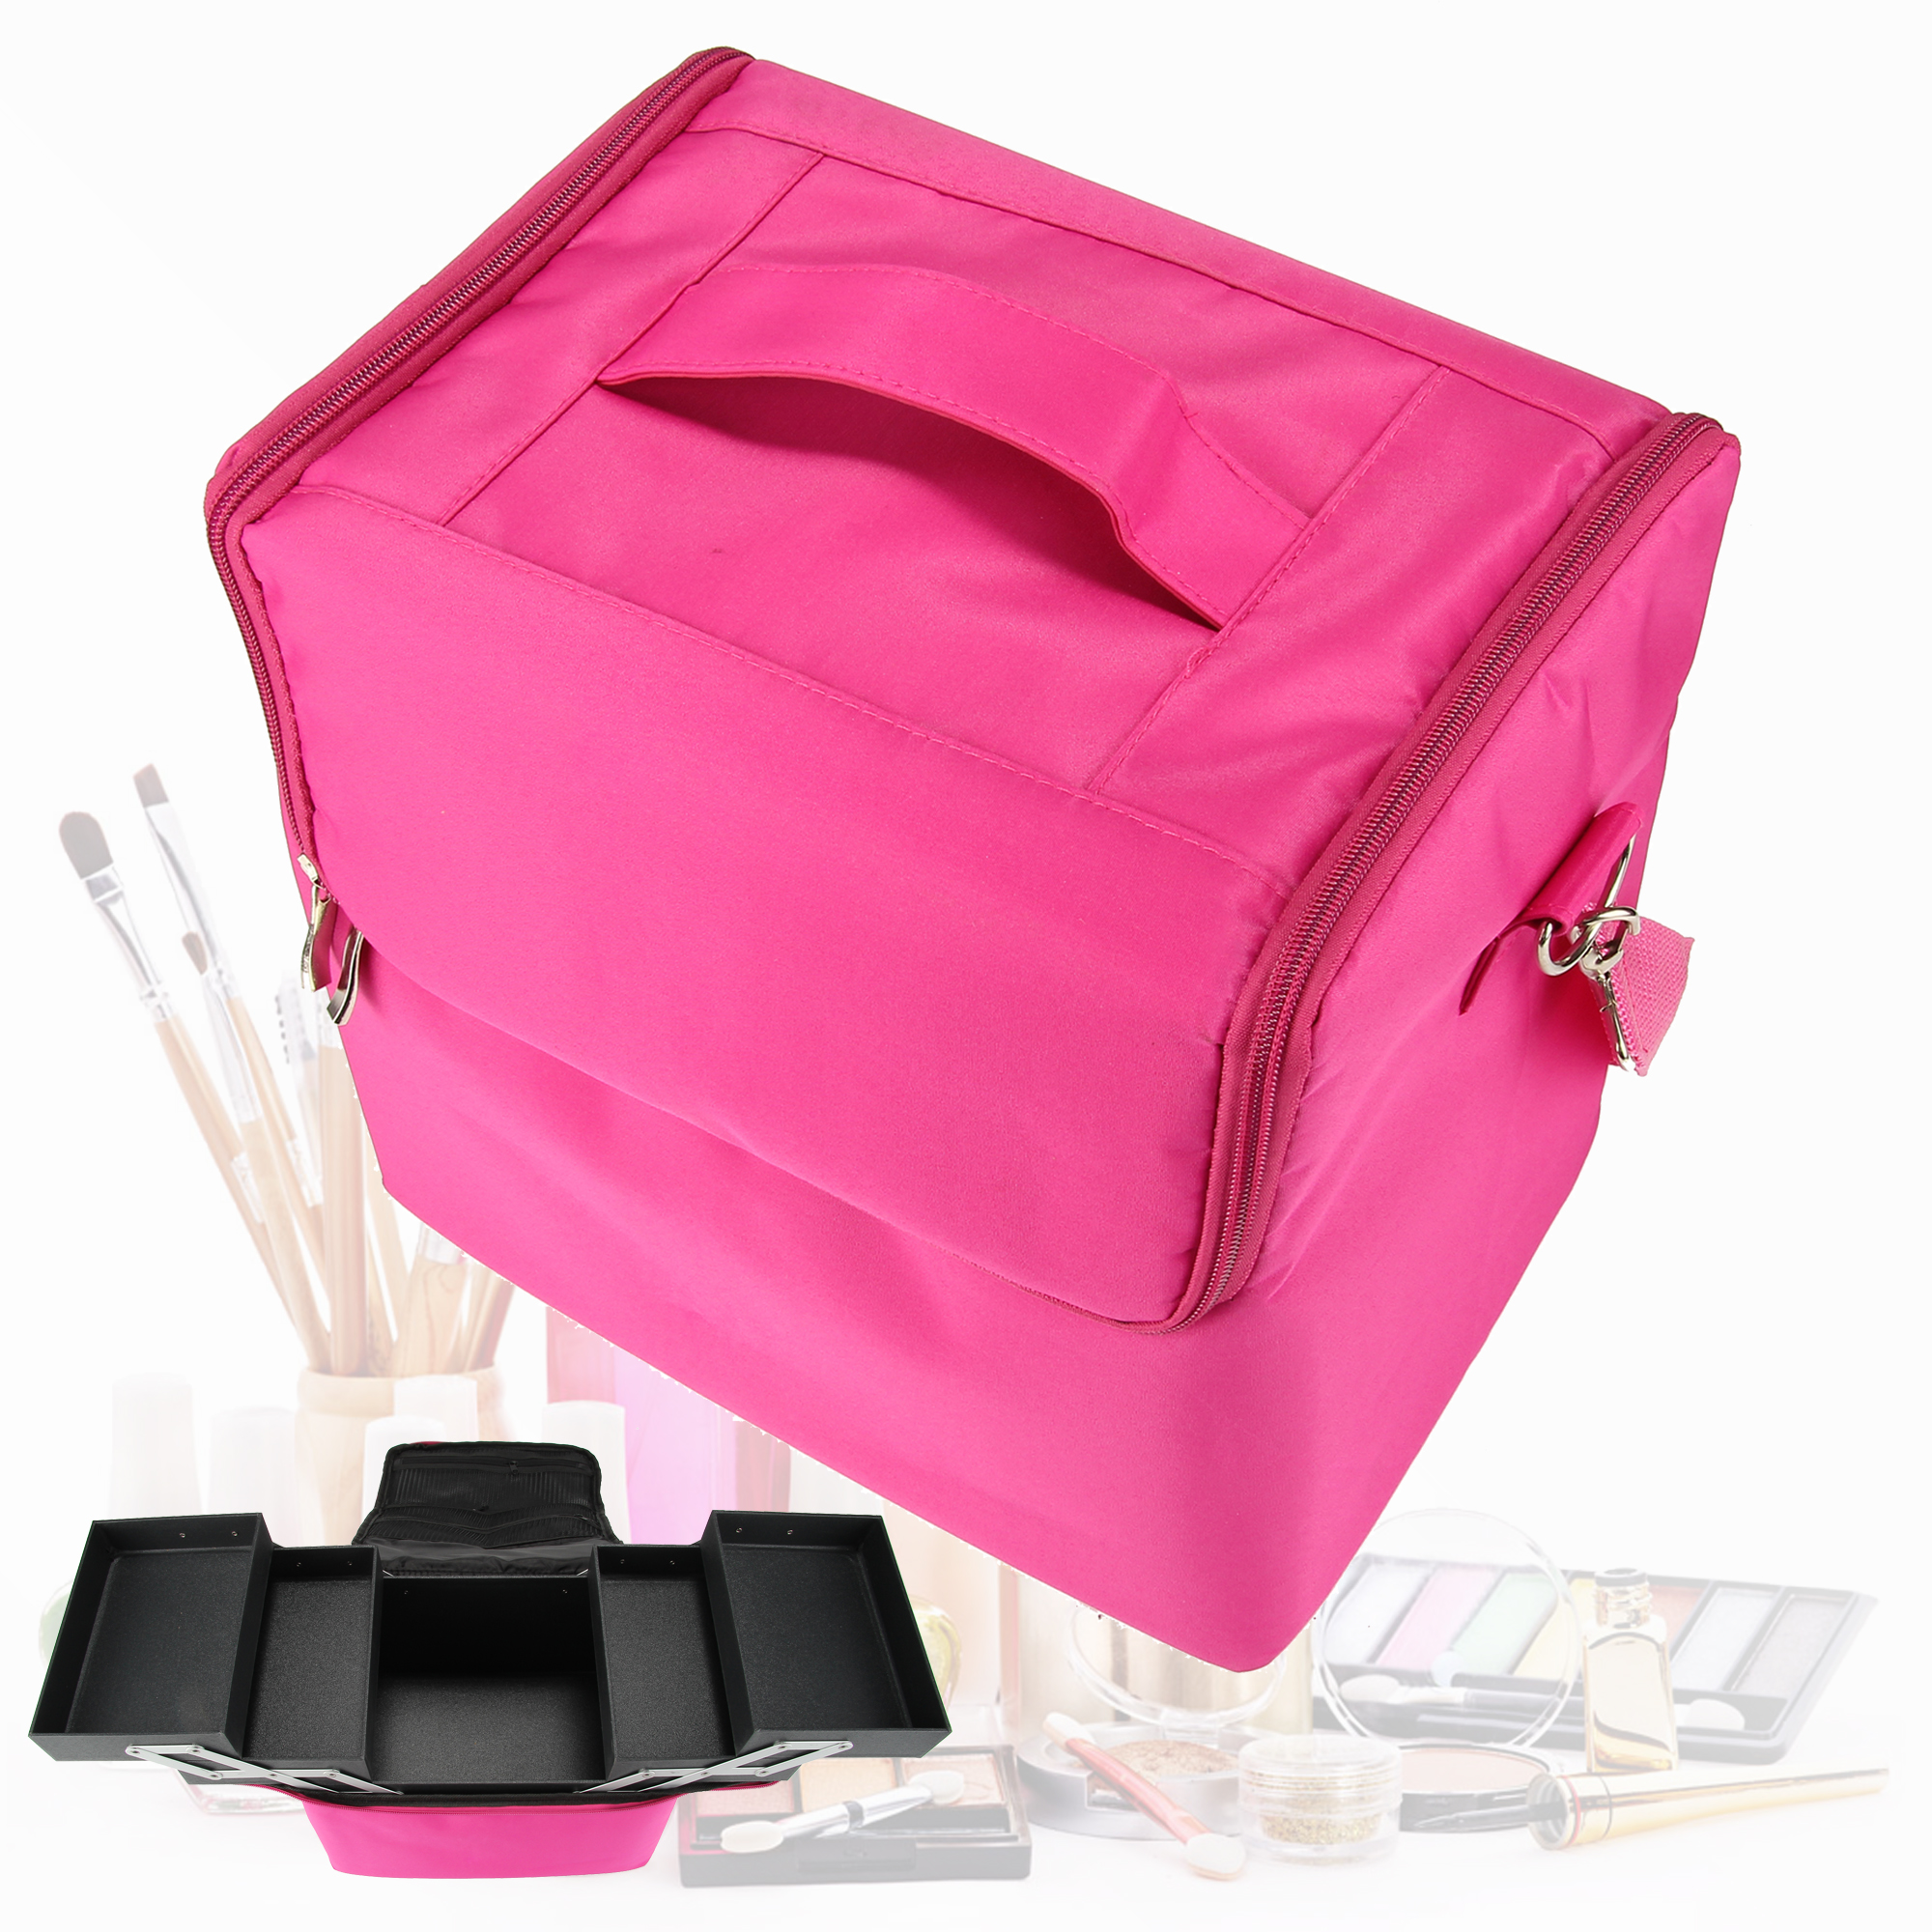 Vanity Case Makeup Bag Cosmetic Bag Box Make Up Organizer Toiletry Nail Beauty Box Storage Travel Wash With Zipper ttou fashion barrel shaped cosmetic bag trip beauty women travel toiletry kit make up makeup case bag wash bags organizer